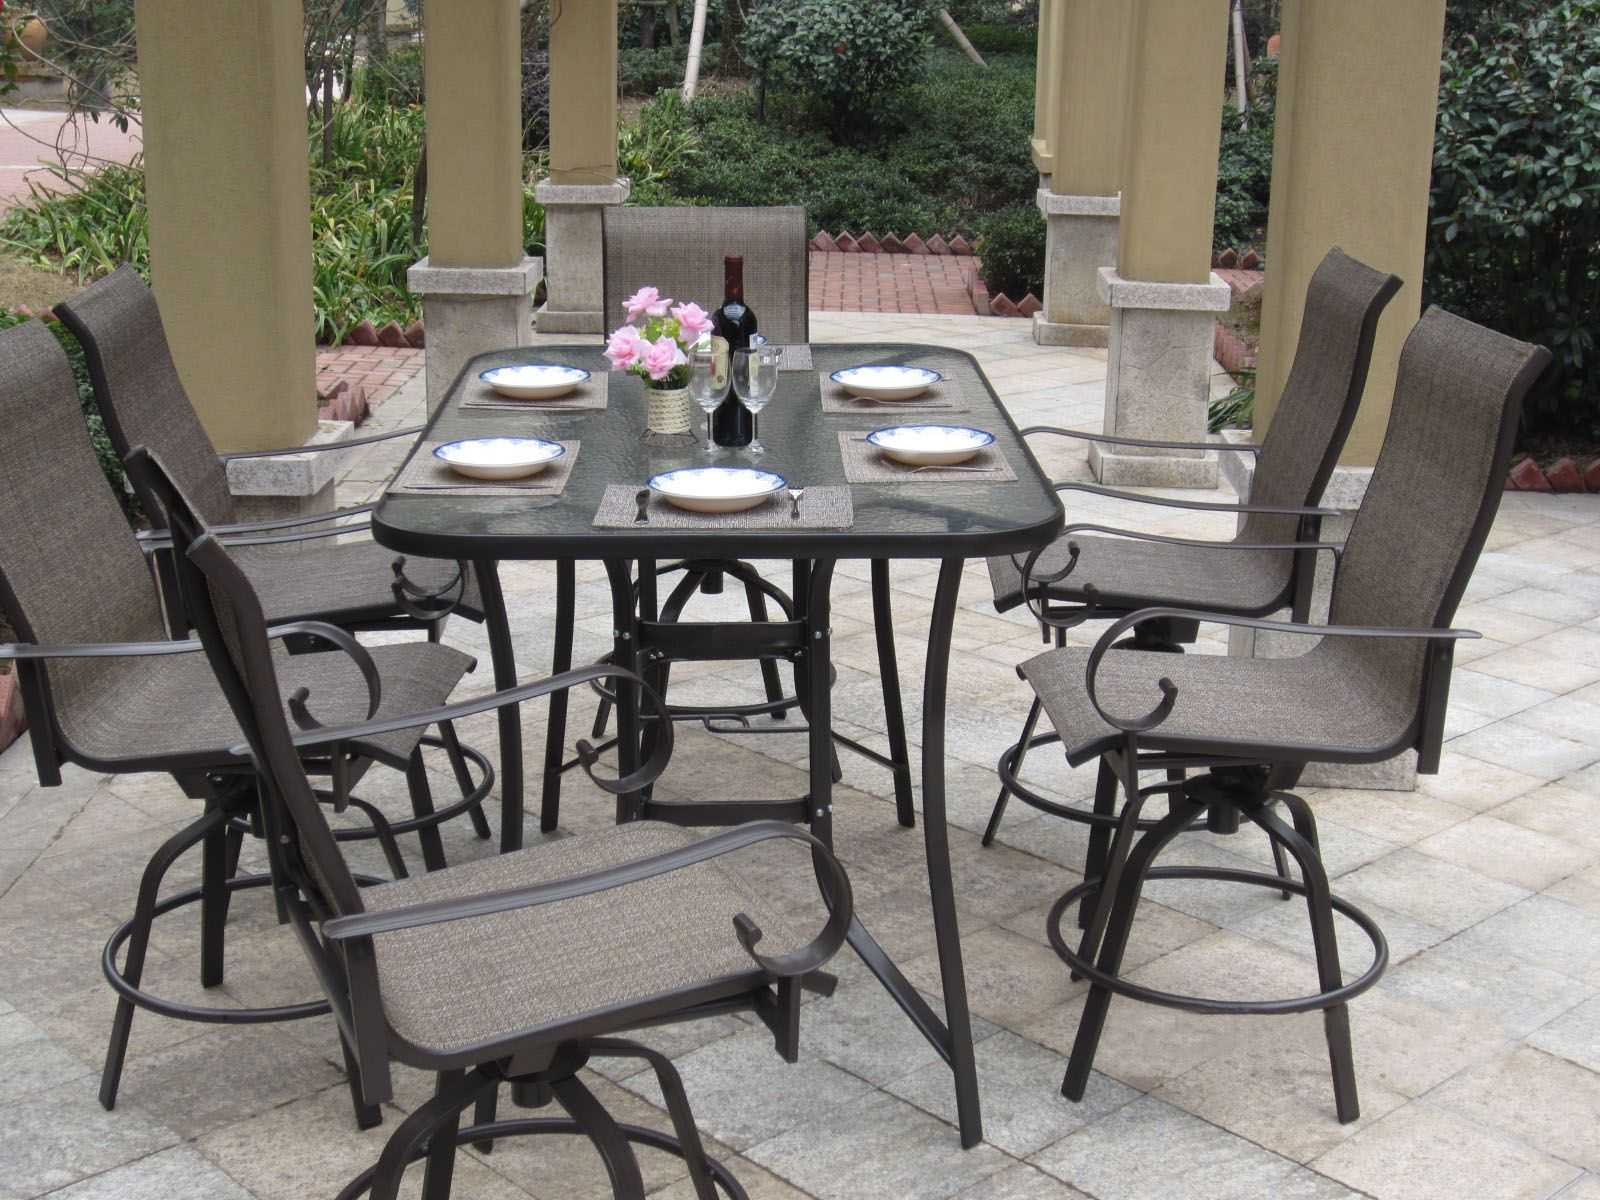 Patio Bar Dining Sets 3 Bar Height Patio Dining Sets to Enjoy